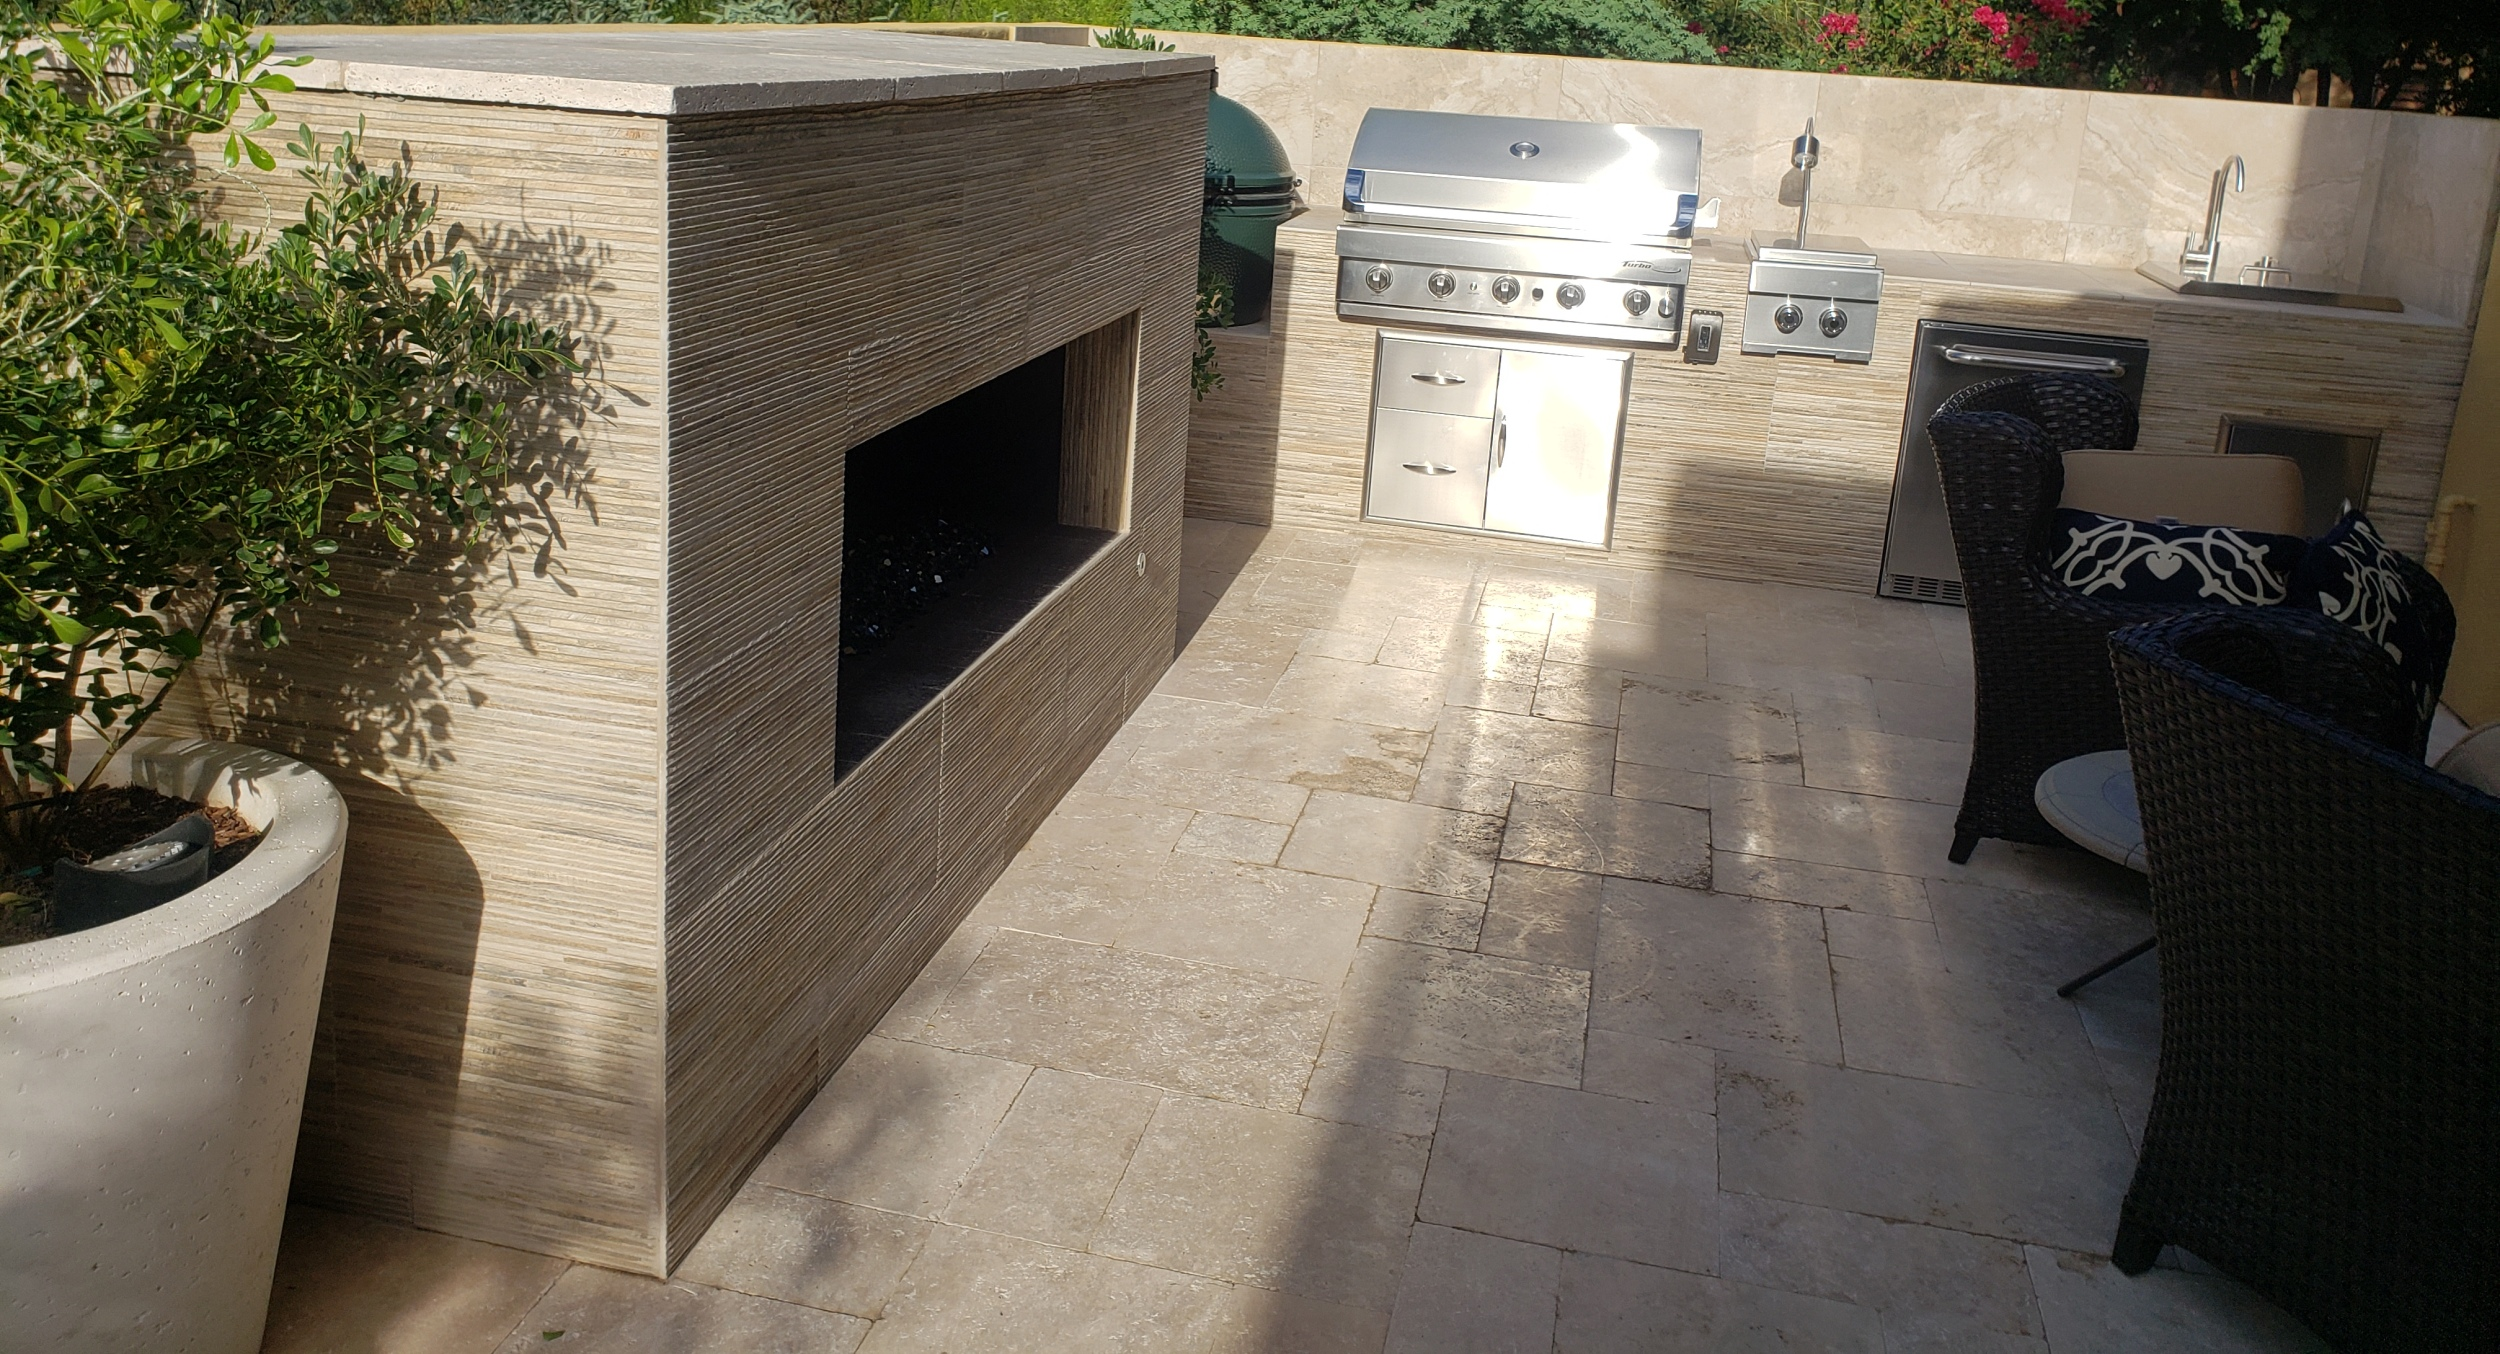 Textural interest adds new dimension to modern outdoor spaces like this new outdoor kitchen Scottsdale condo owners had us build.